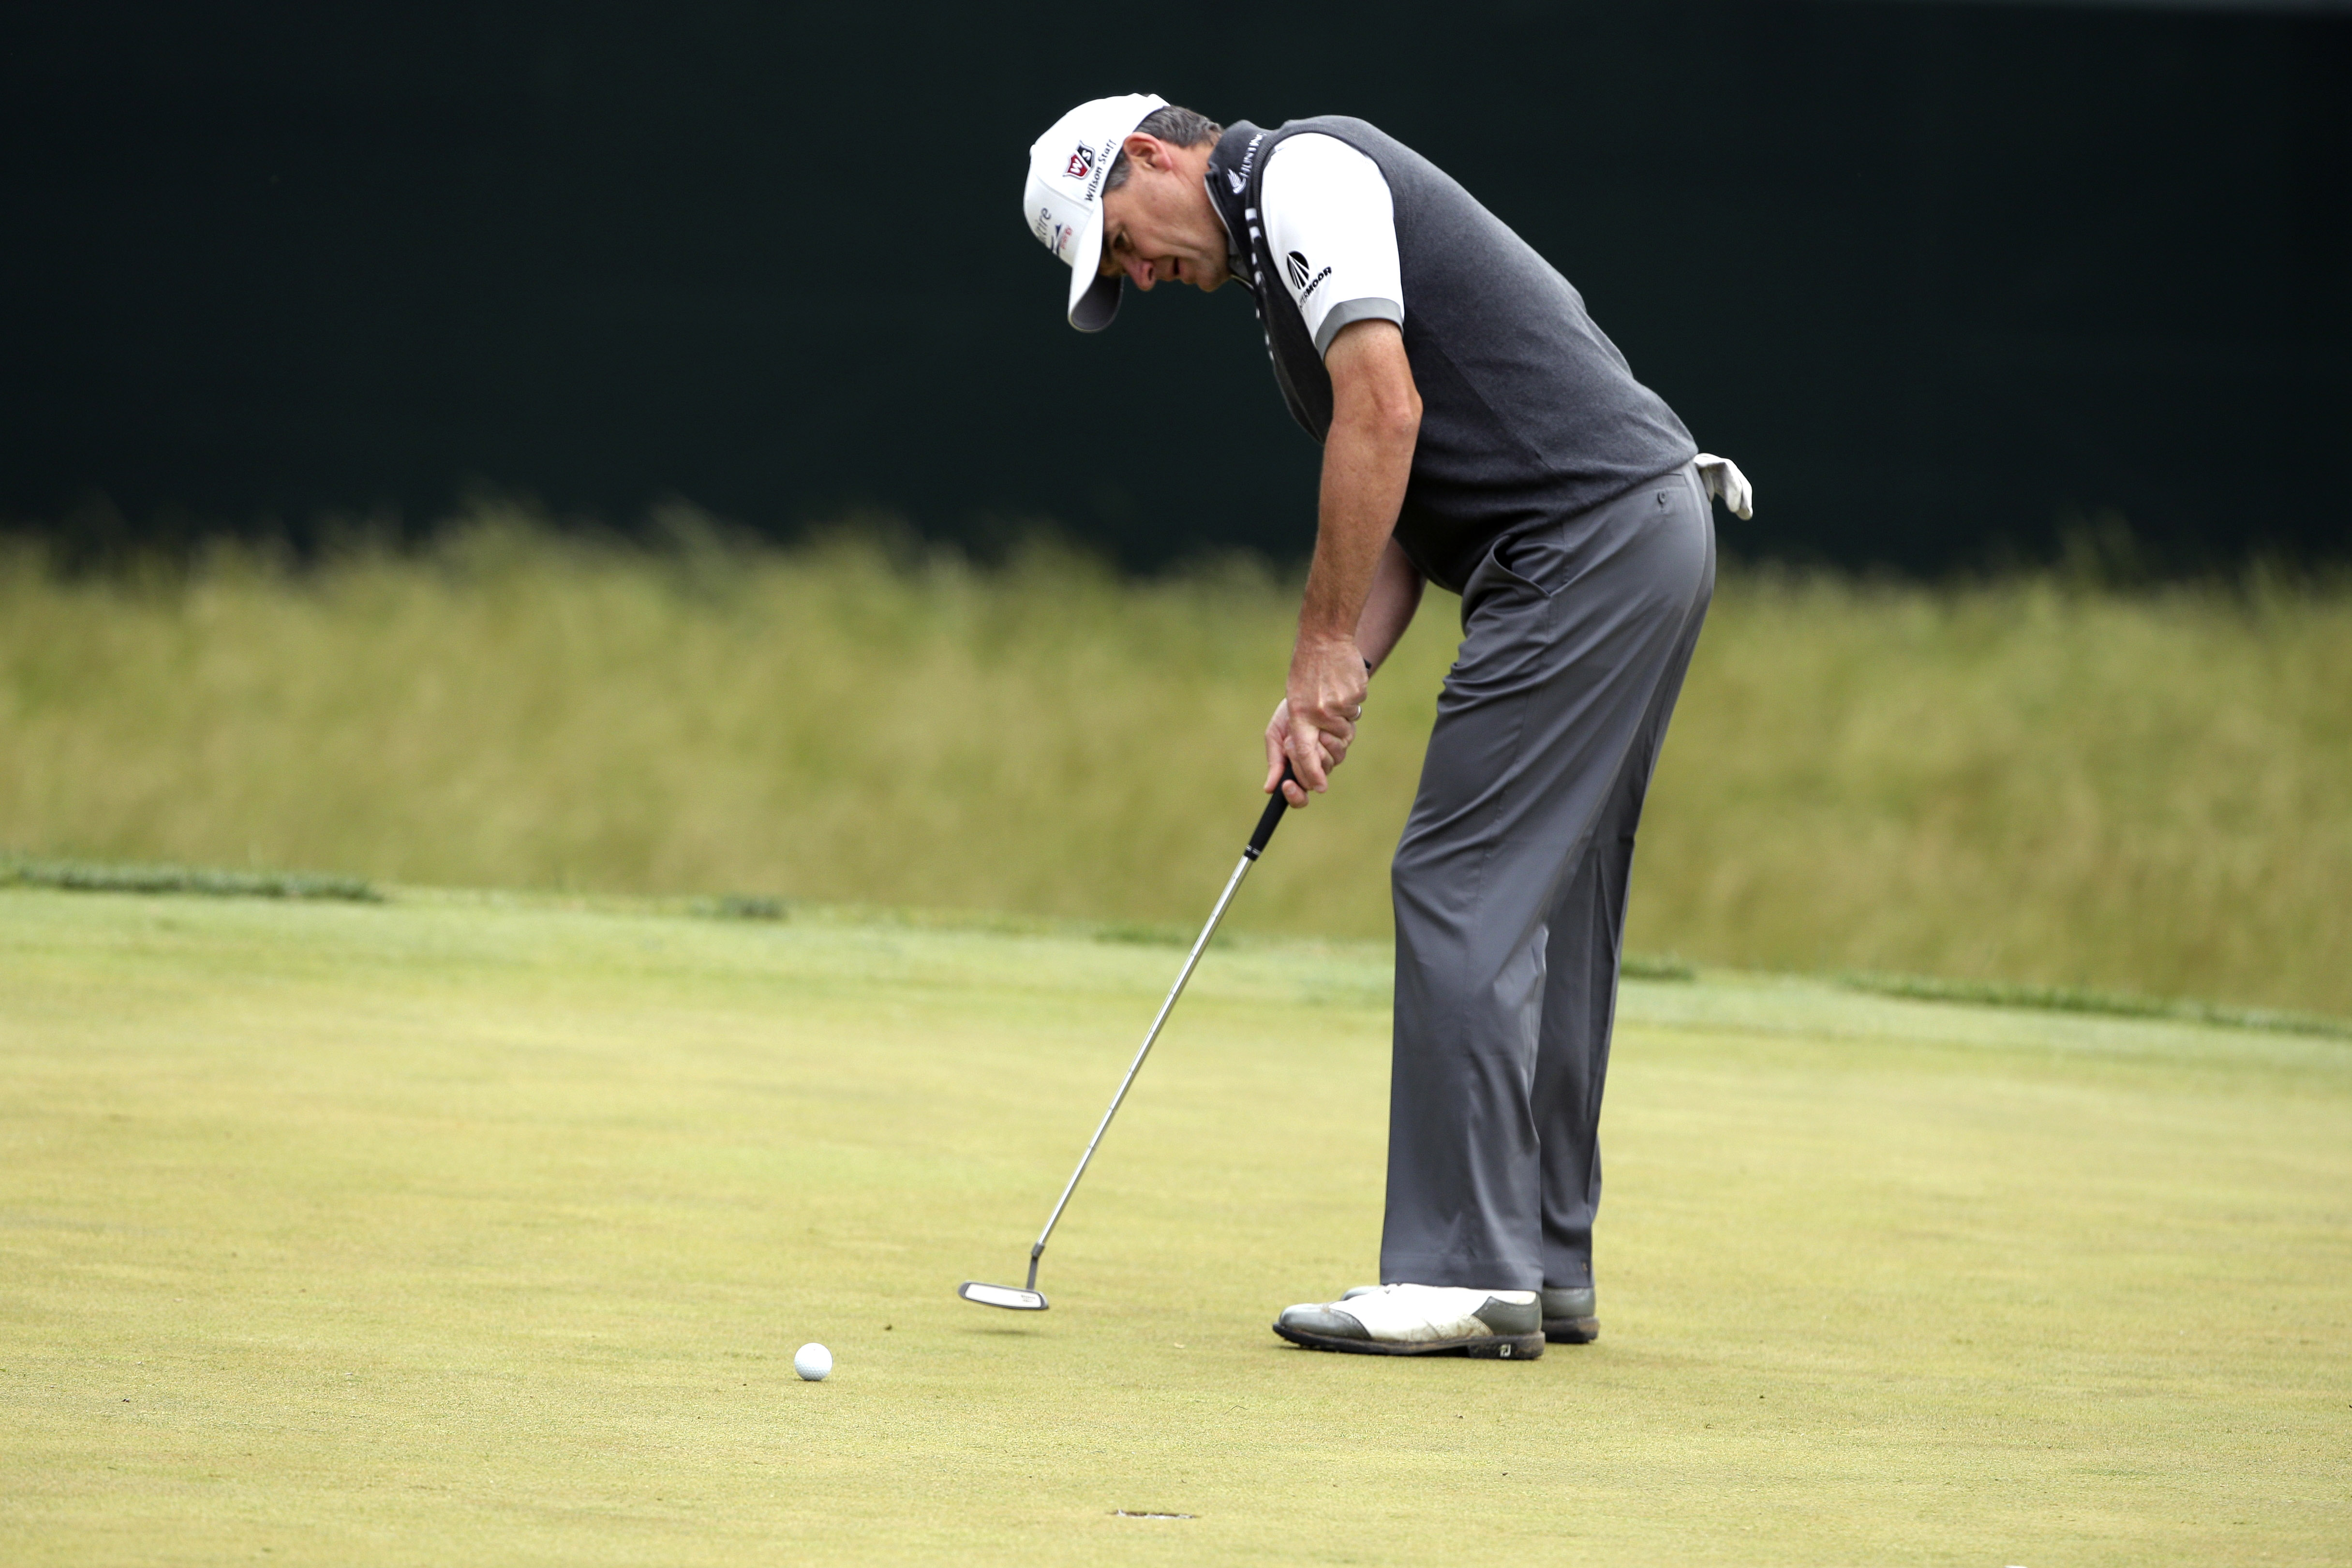 Paul Lawrie, of Scotland, putts on the 13th hole during the second round of the U.S. Open golf tournament at Merion Golf Club, Friday, June 14, 2013, in Ardmore, Pa. (AP Photo/Charlie Riedel)